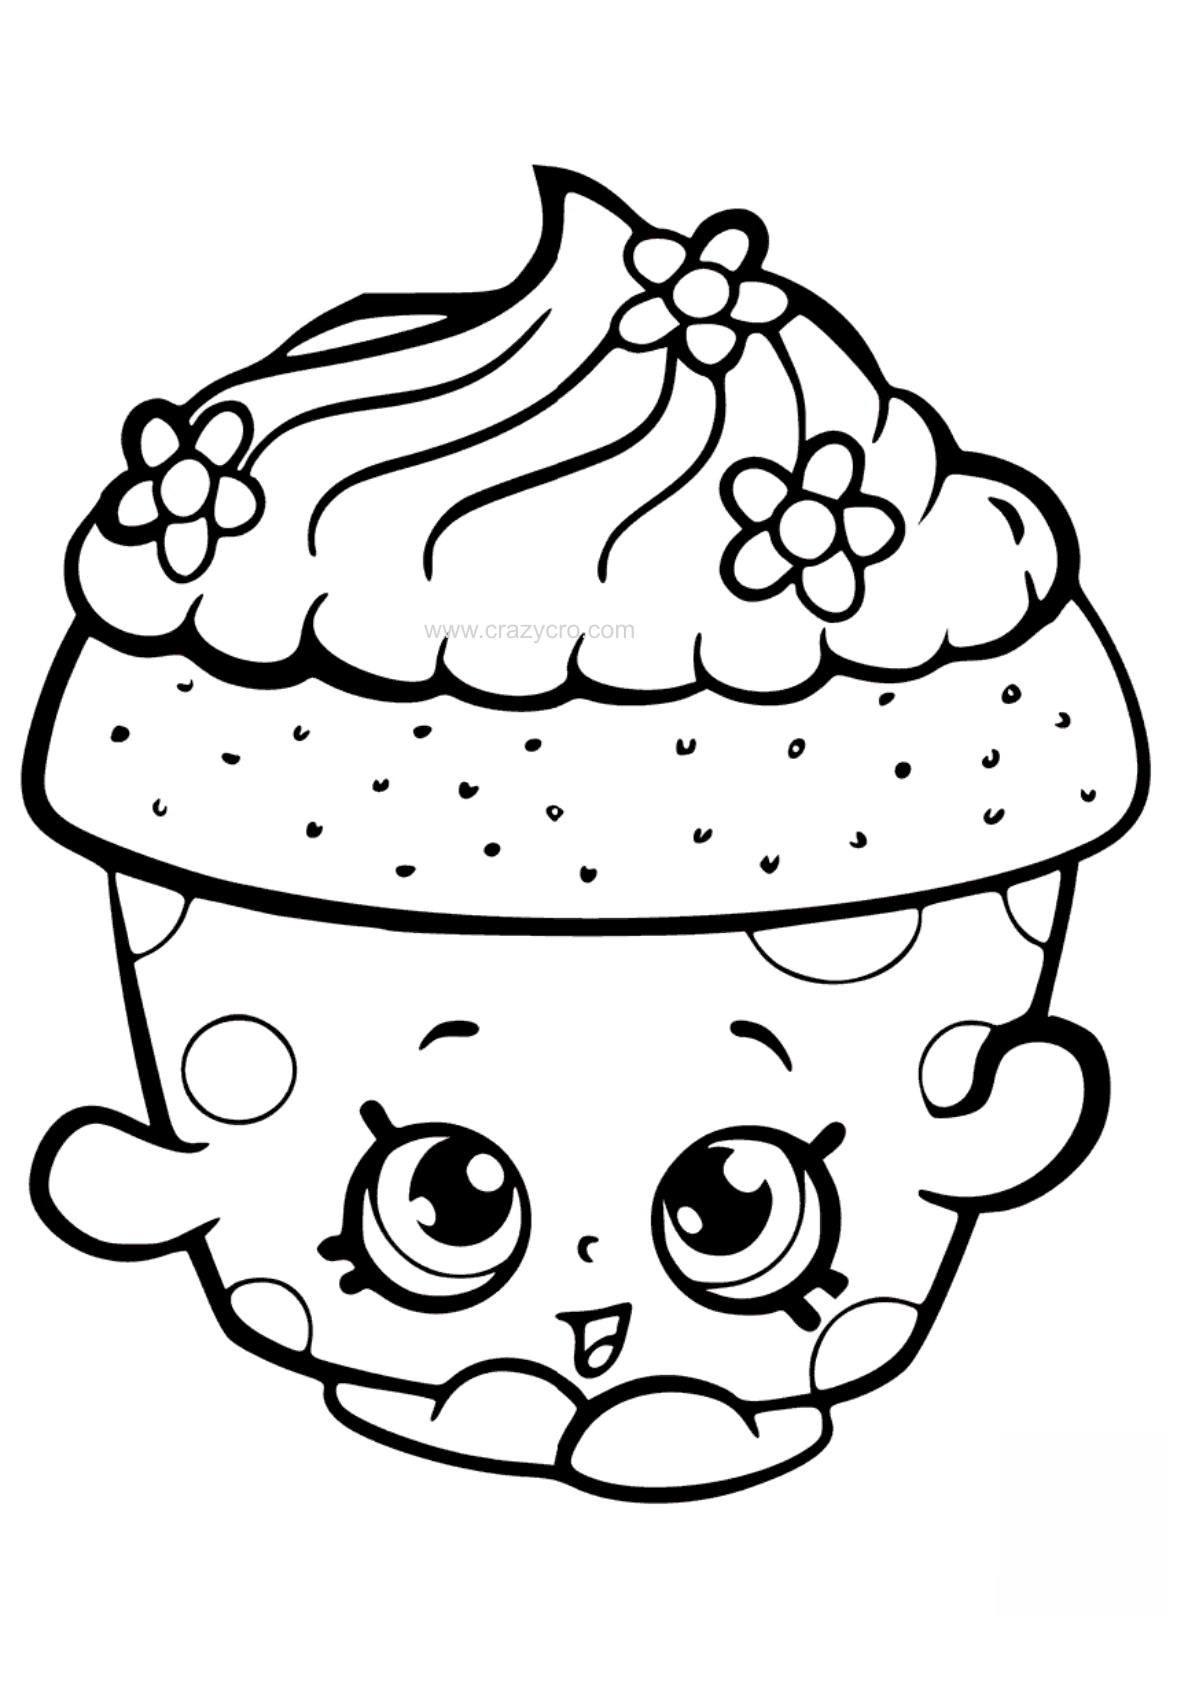 Cupcake petal coloring page. Shopkin drawing black and white graphic freeuse download